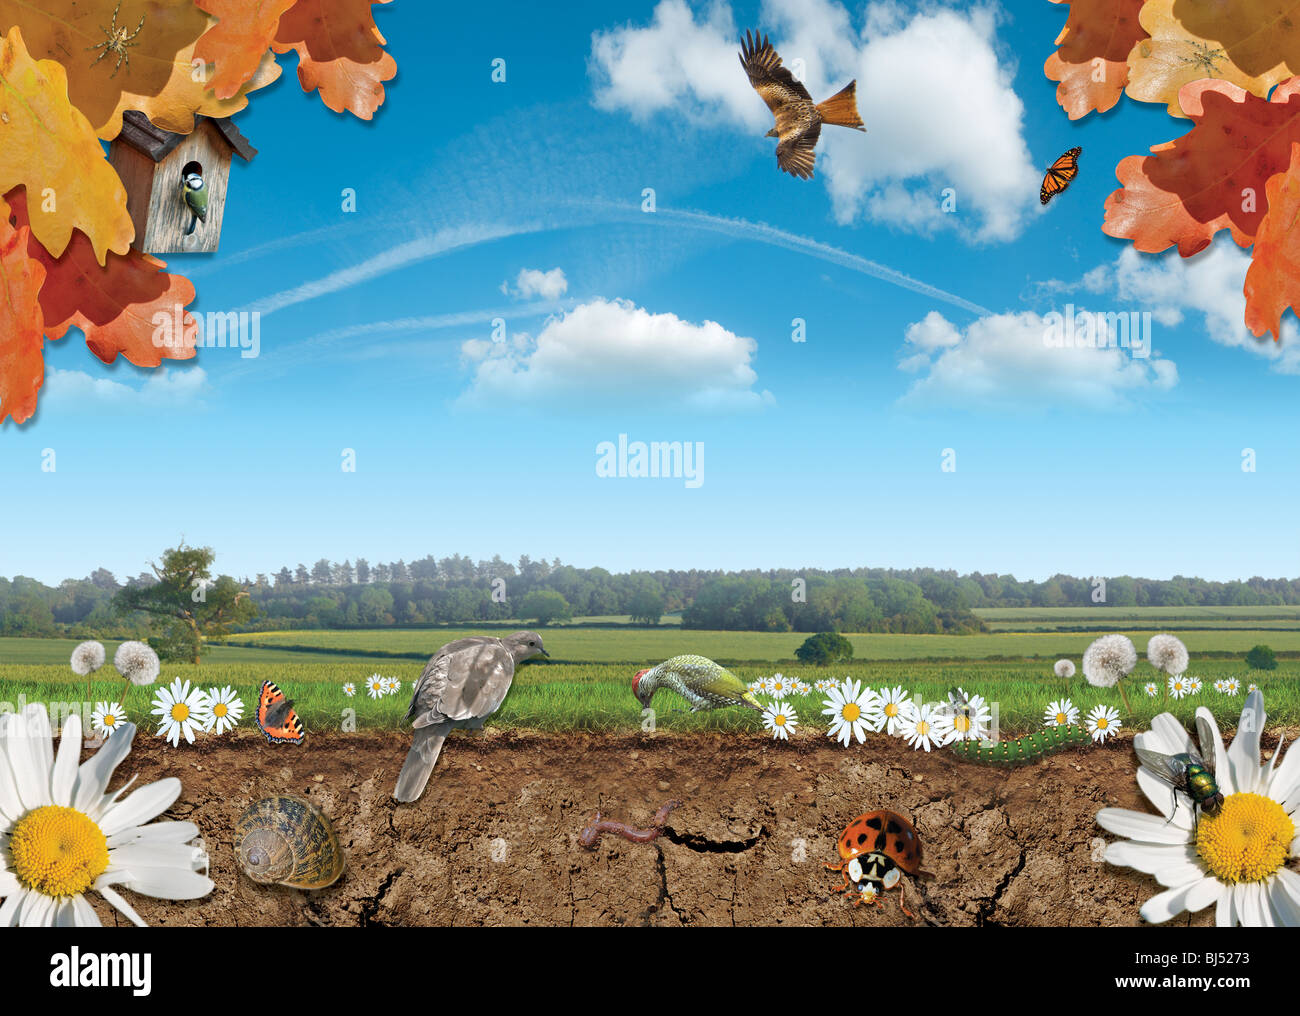 A photographic composite showing a nature scene including animals